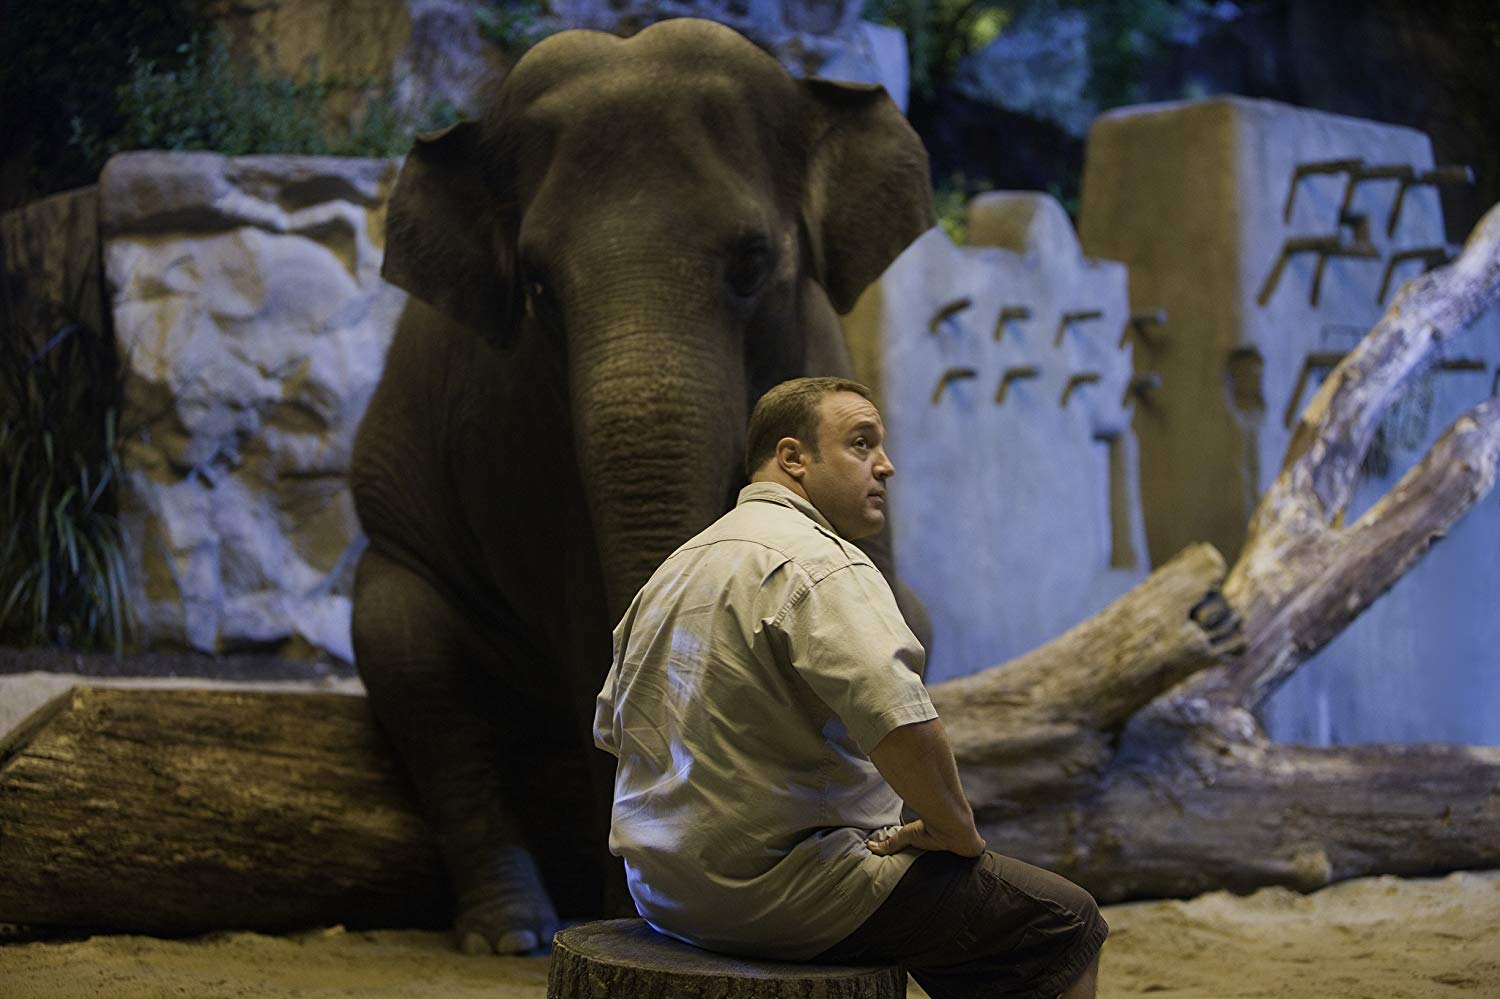 Kevin James seeks romantic advice from Barry the Elephant in Zookeeper (2011)